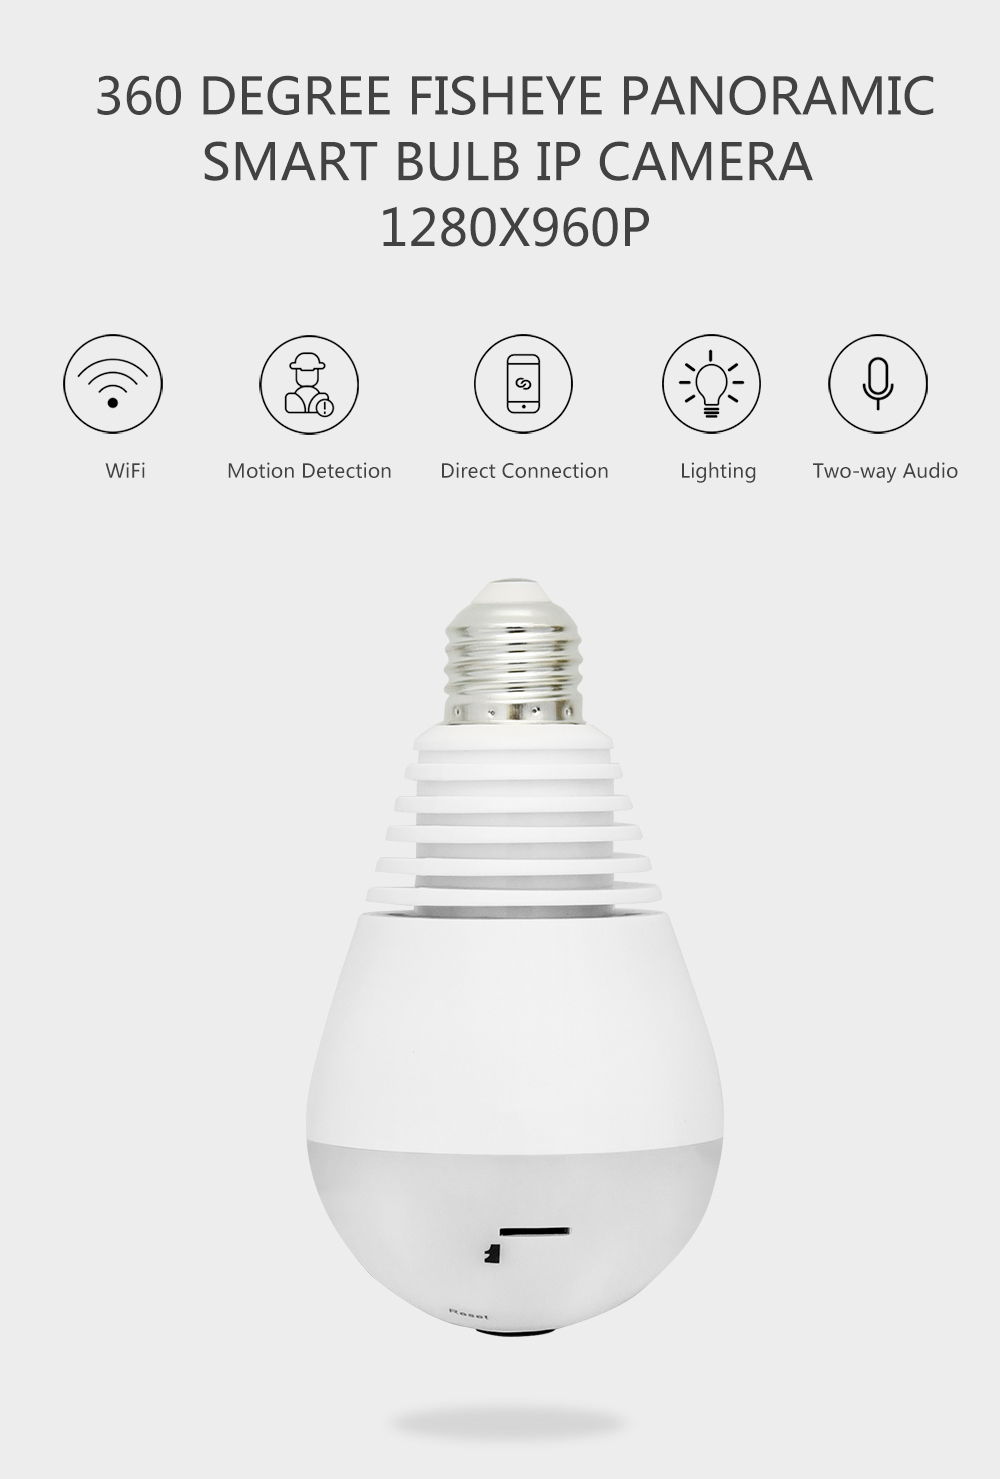 Wistino 960P Wireless VR Panoramic IP Camera Bulb Light Wifi FishEye 360 degree CCTV Surveillance Security Monitor Comone 1 (1)